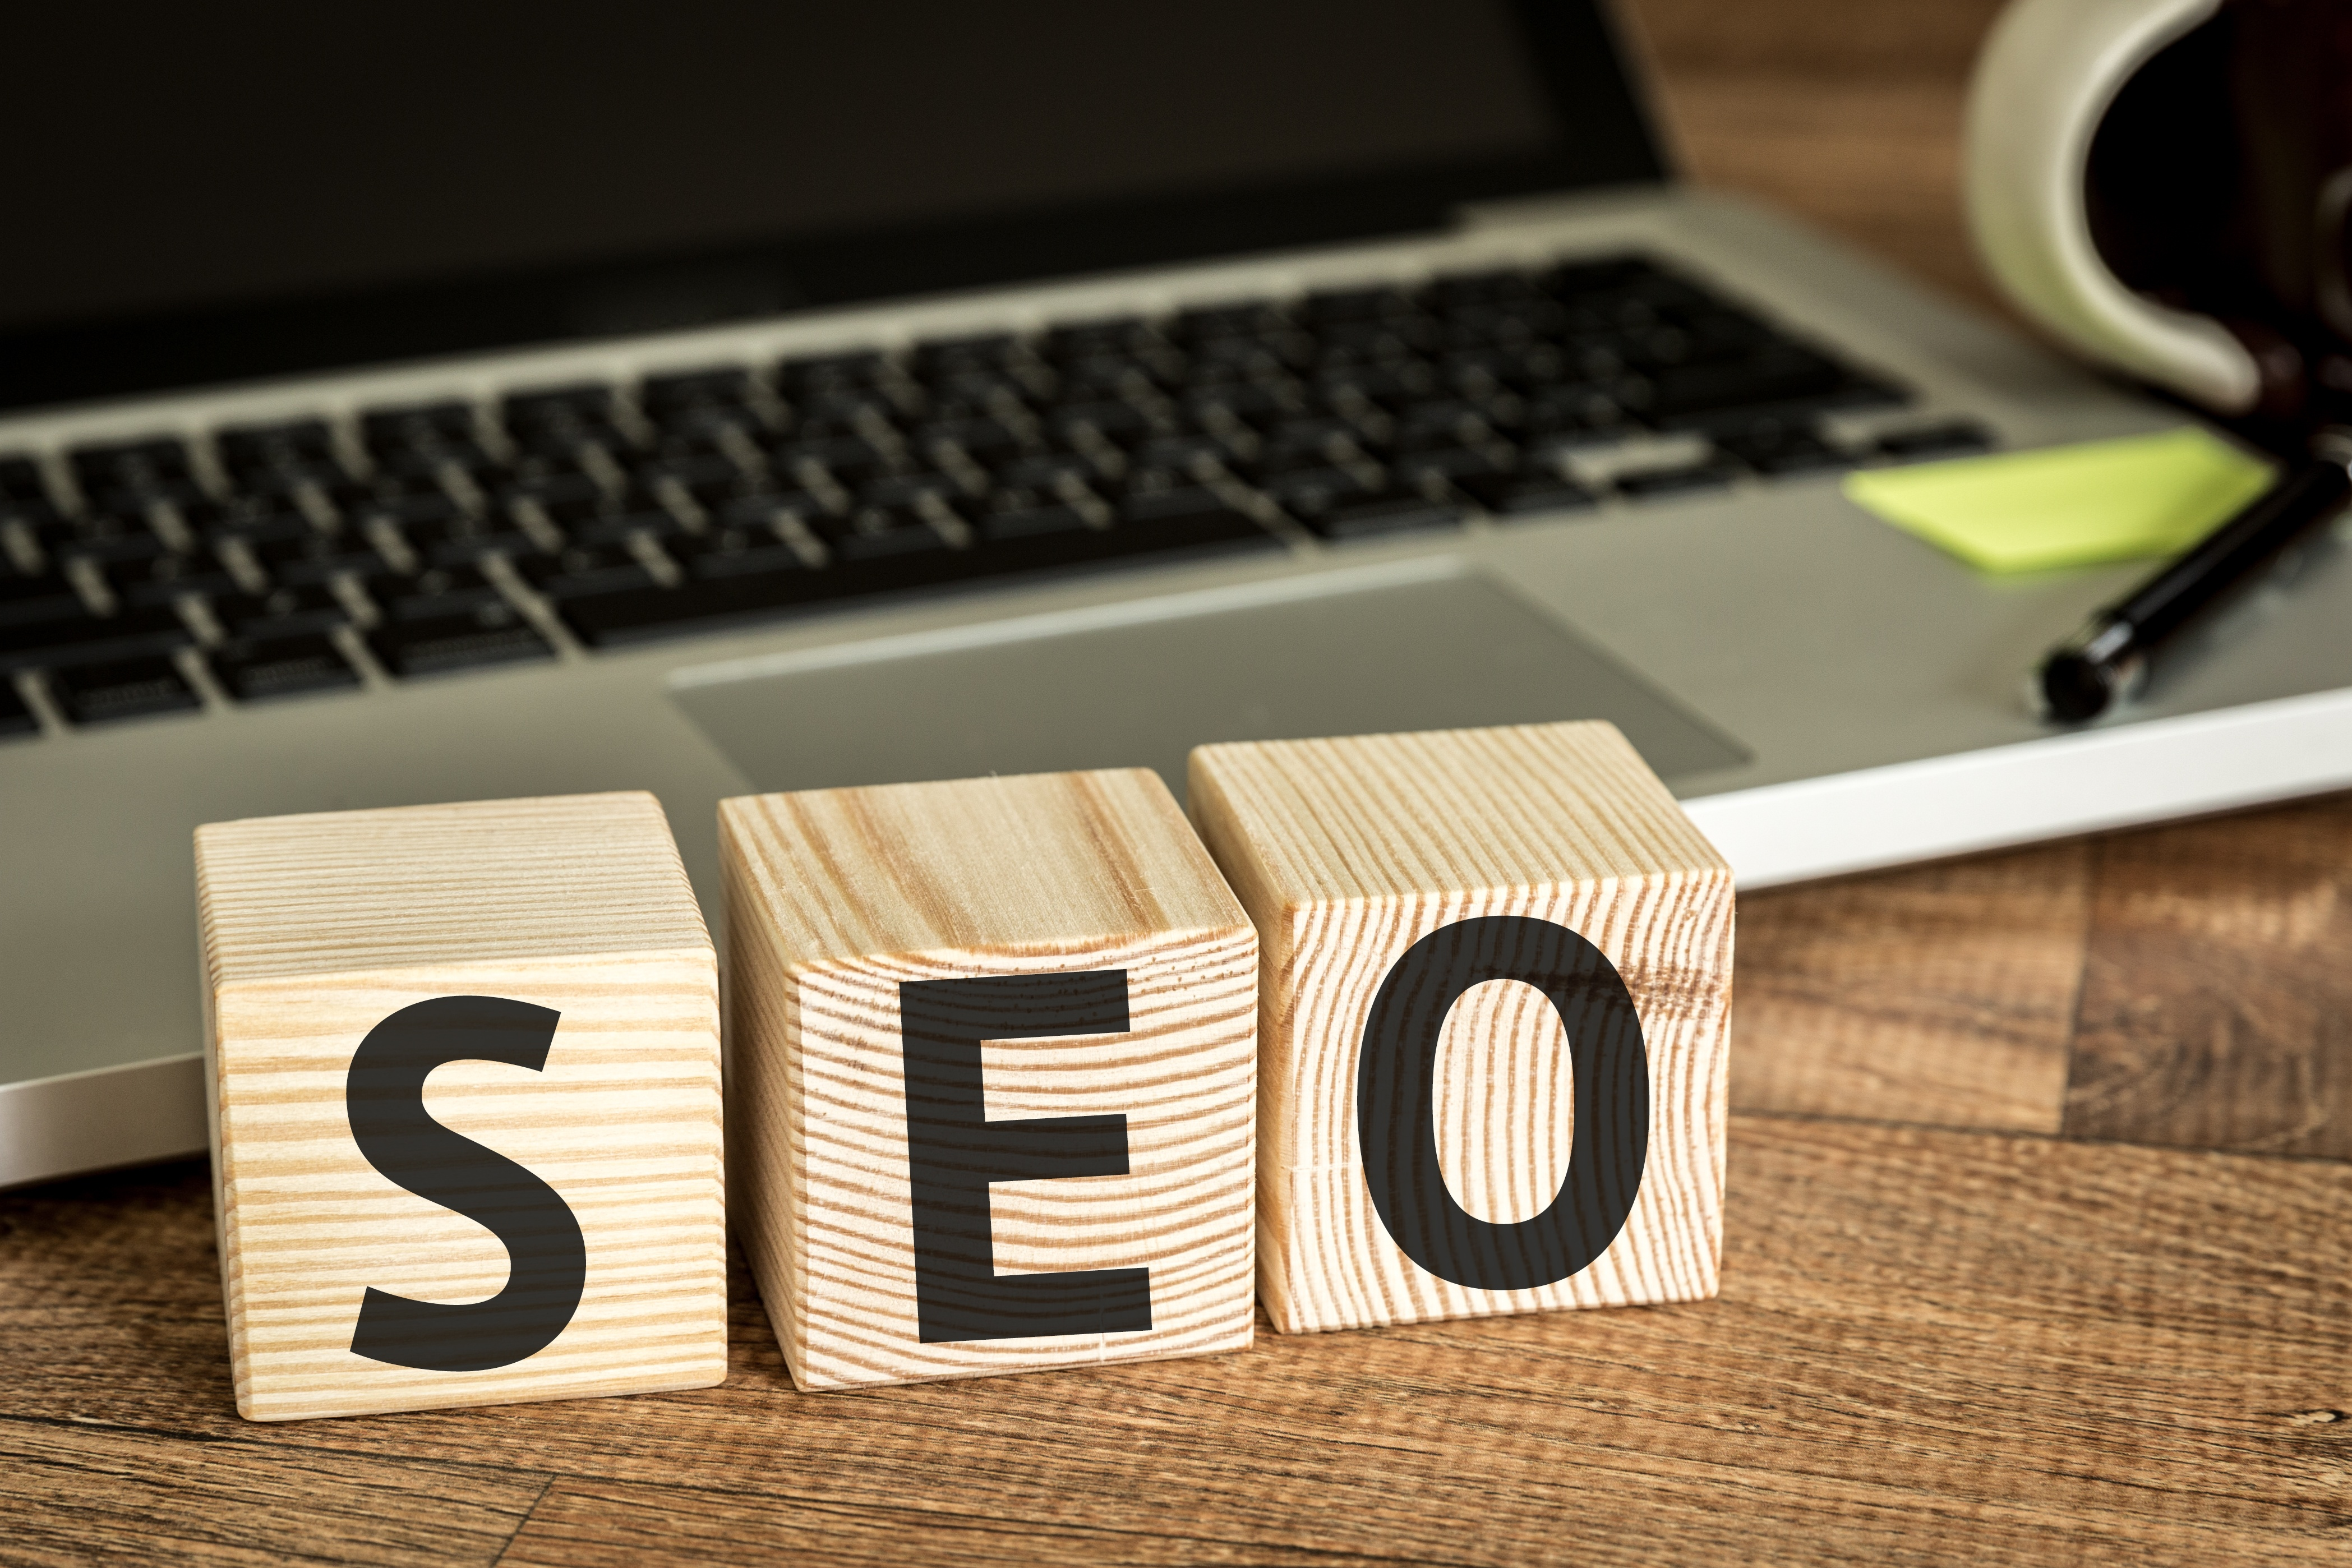 i7M.Image.Blog Post. SEO for Small Businesses.jpg